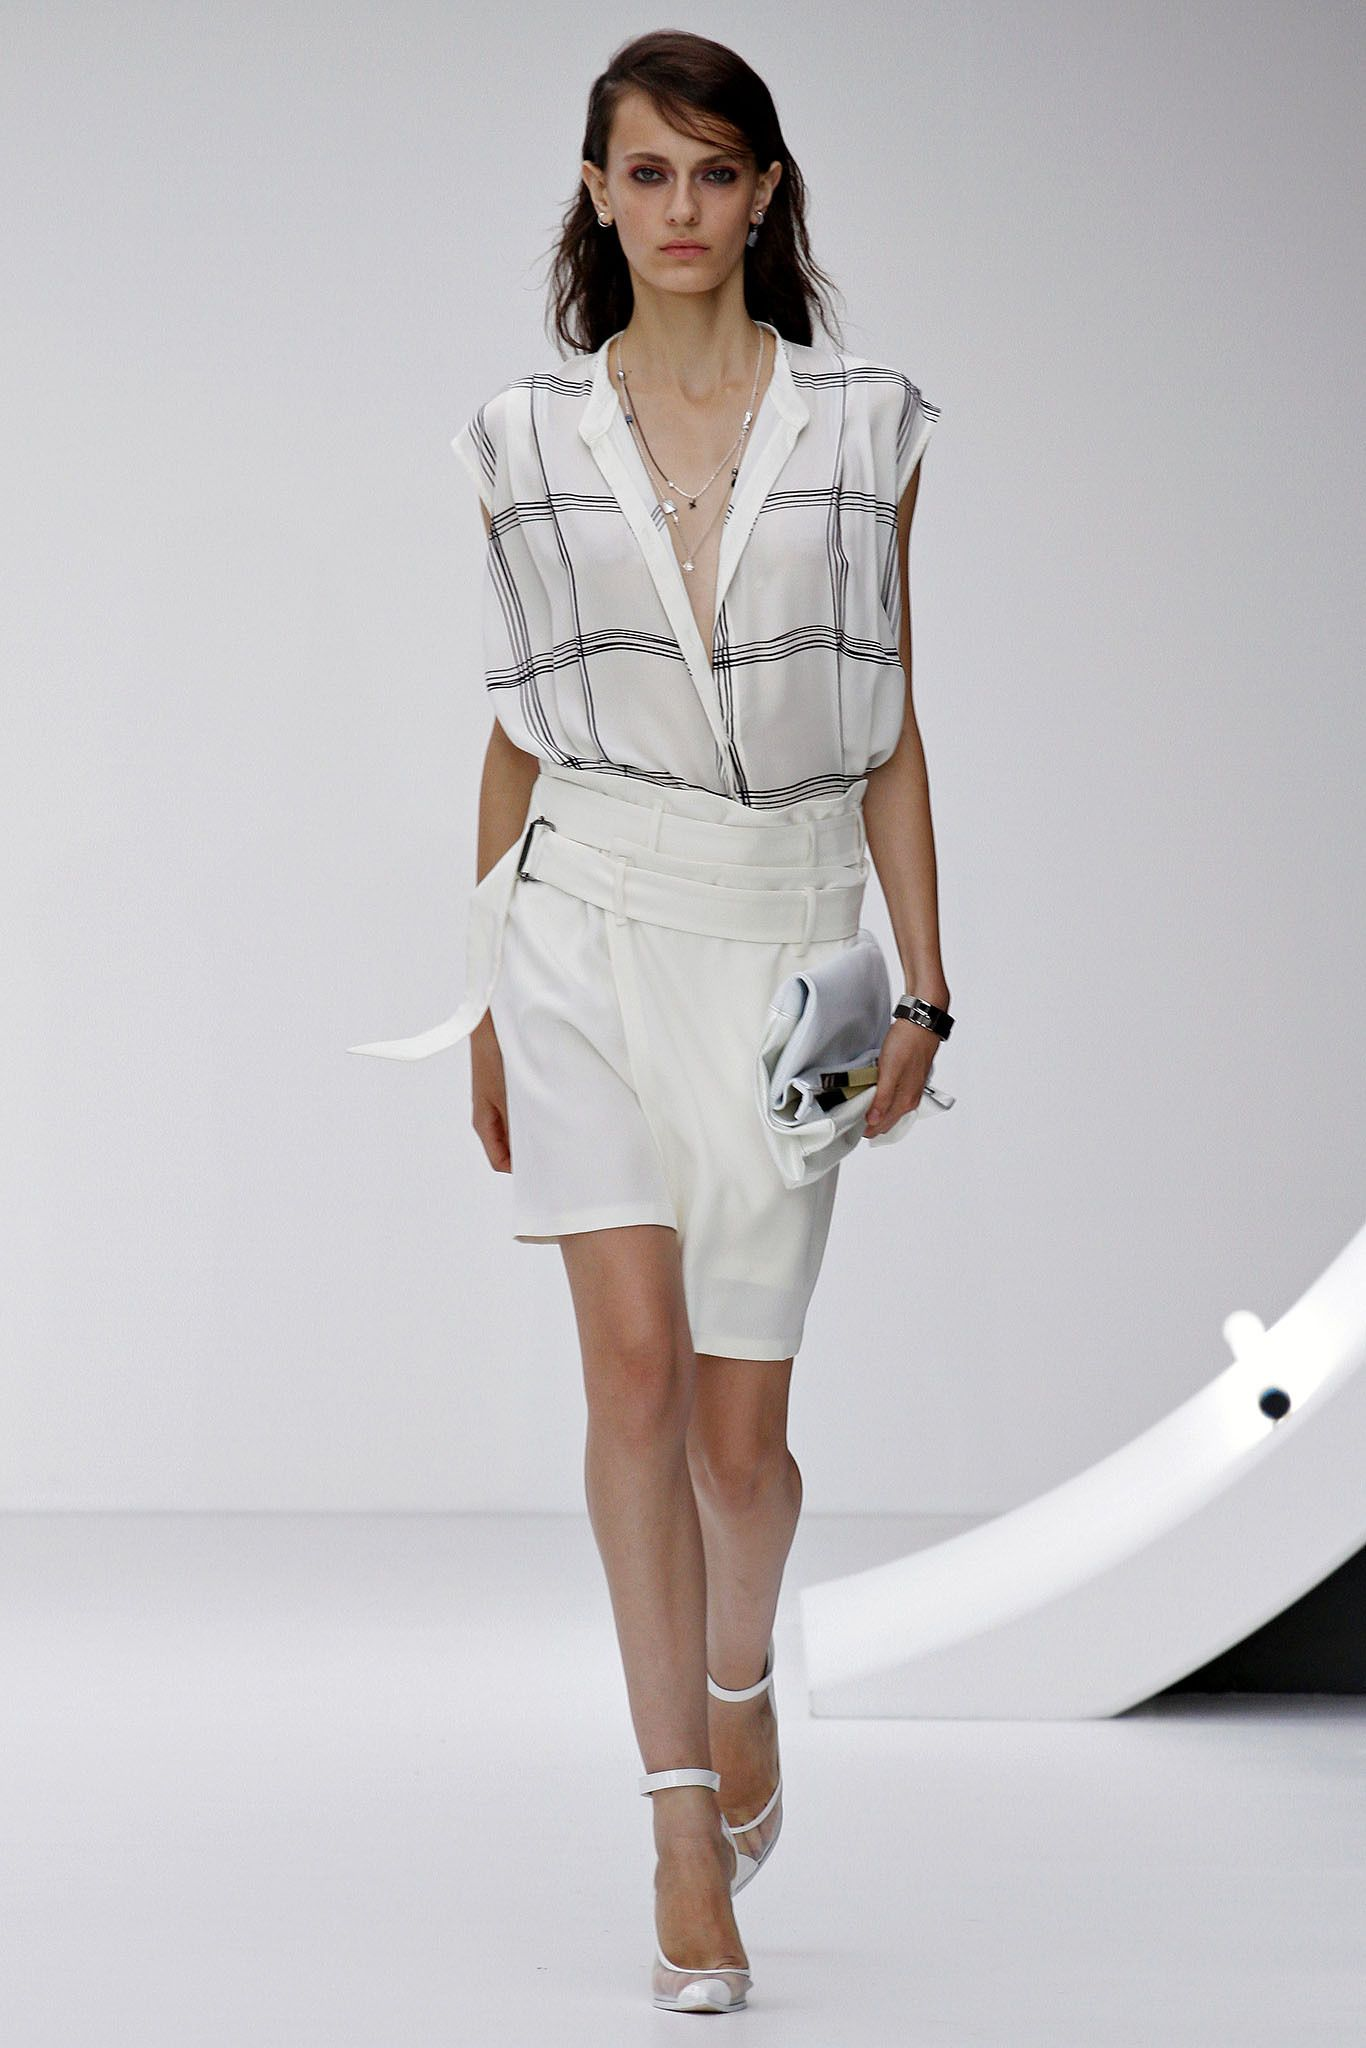 Topshop Unique Spring 2013 Ready-to-Wear - Collection - Gallery - Style.com